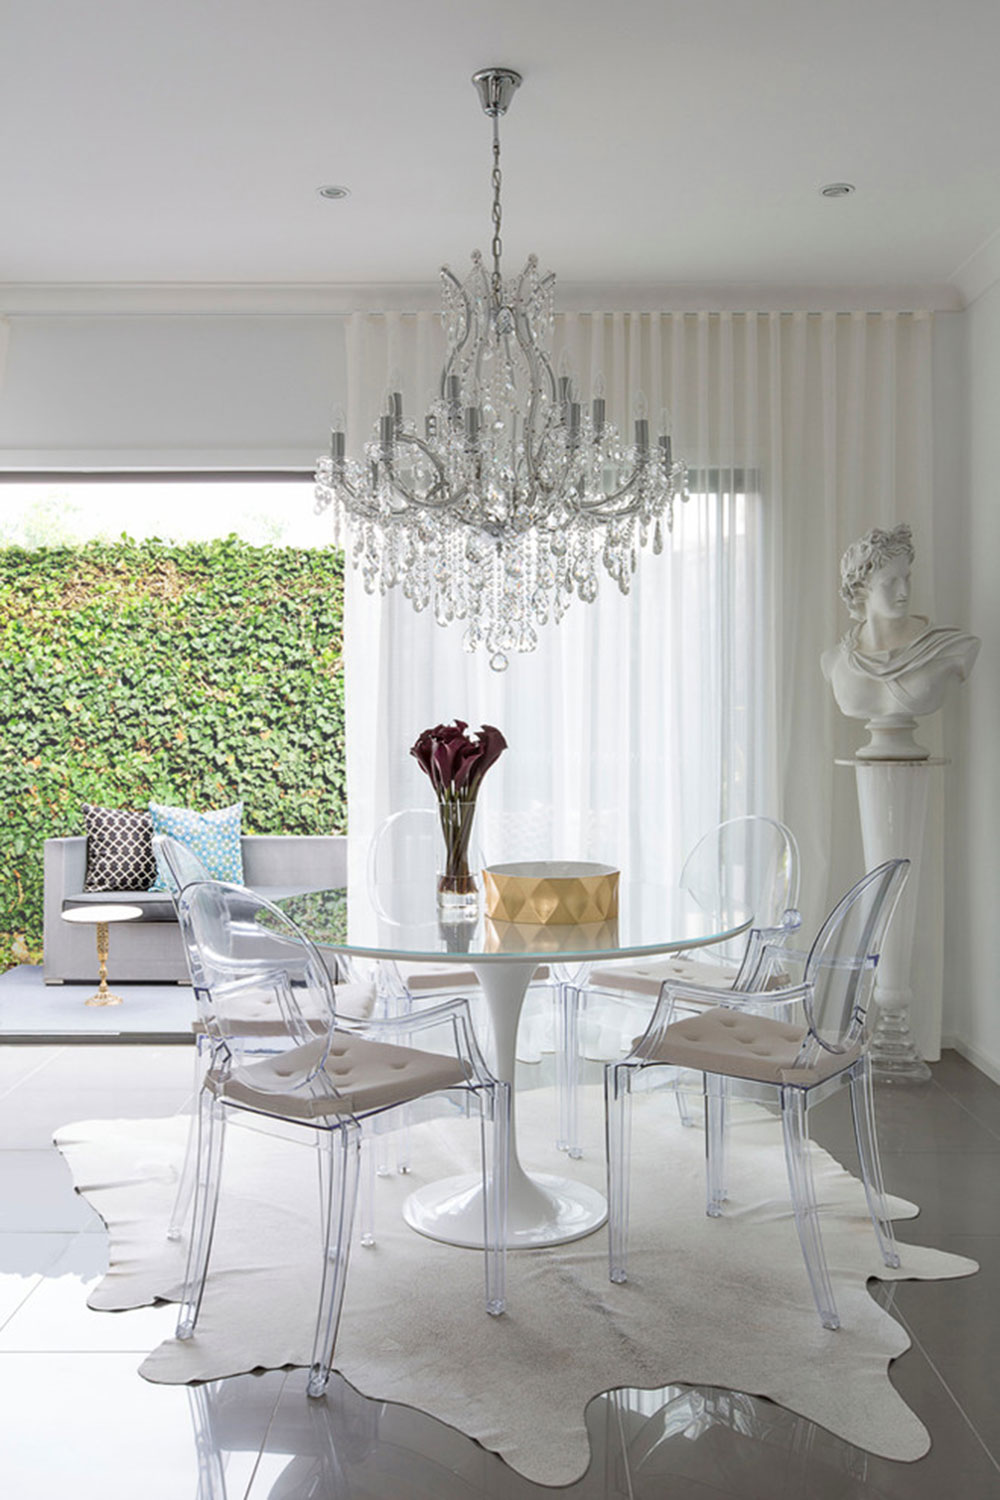 Beautiful chandelier designs 68 modern examples a collection of really beautiful chandelier designs4 beautiful chandelier designs arubaitofo Gallery